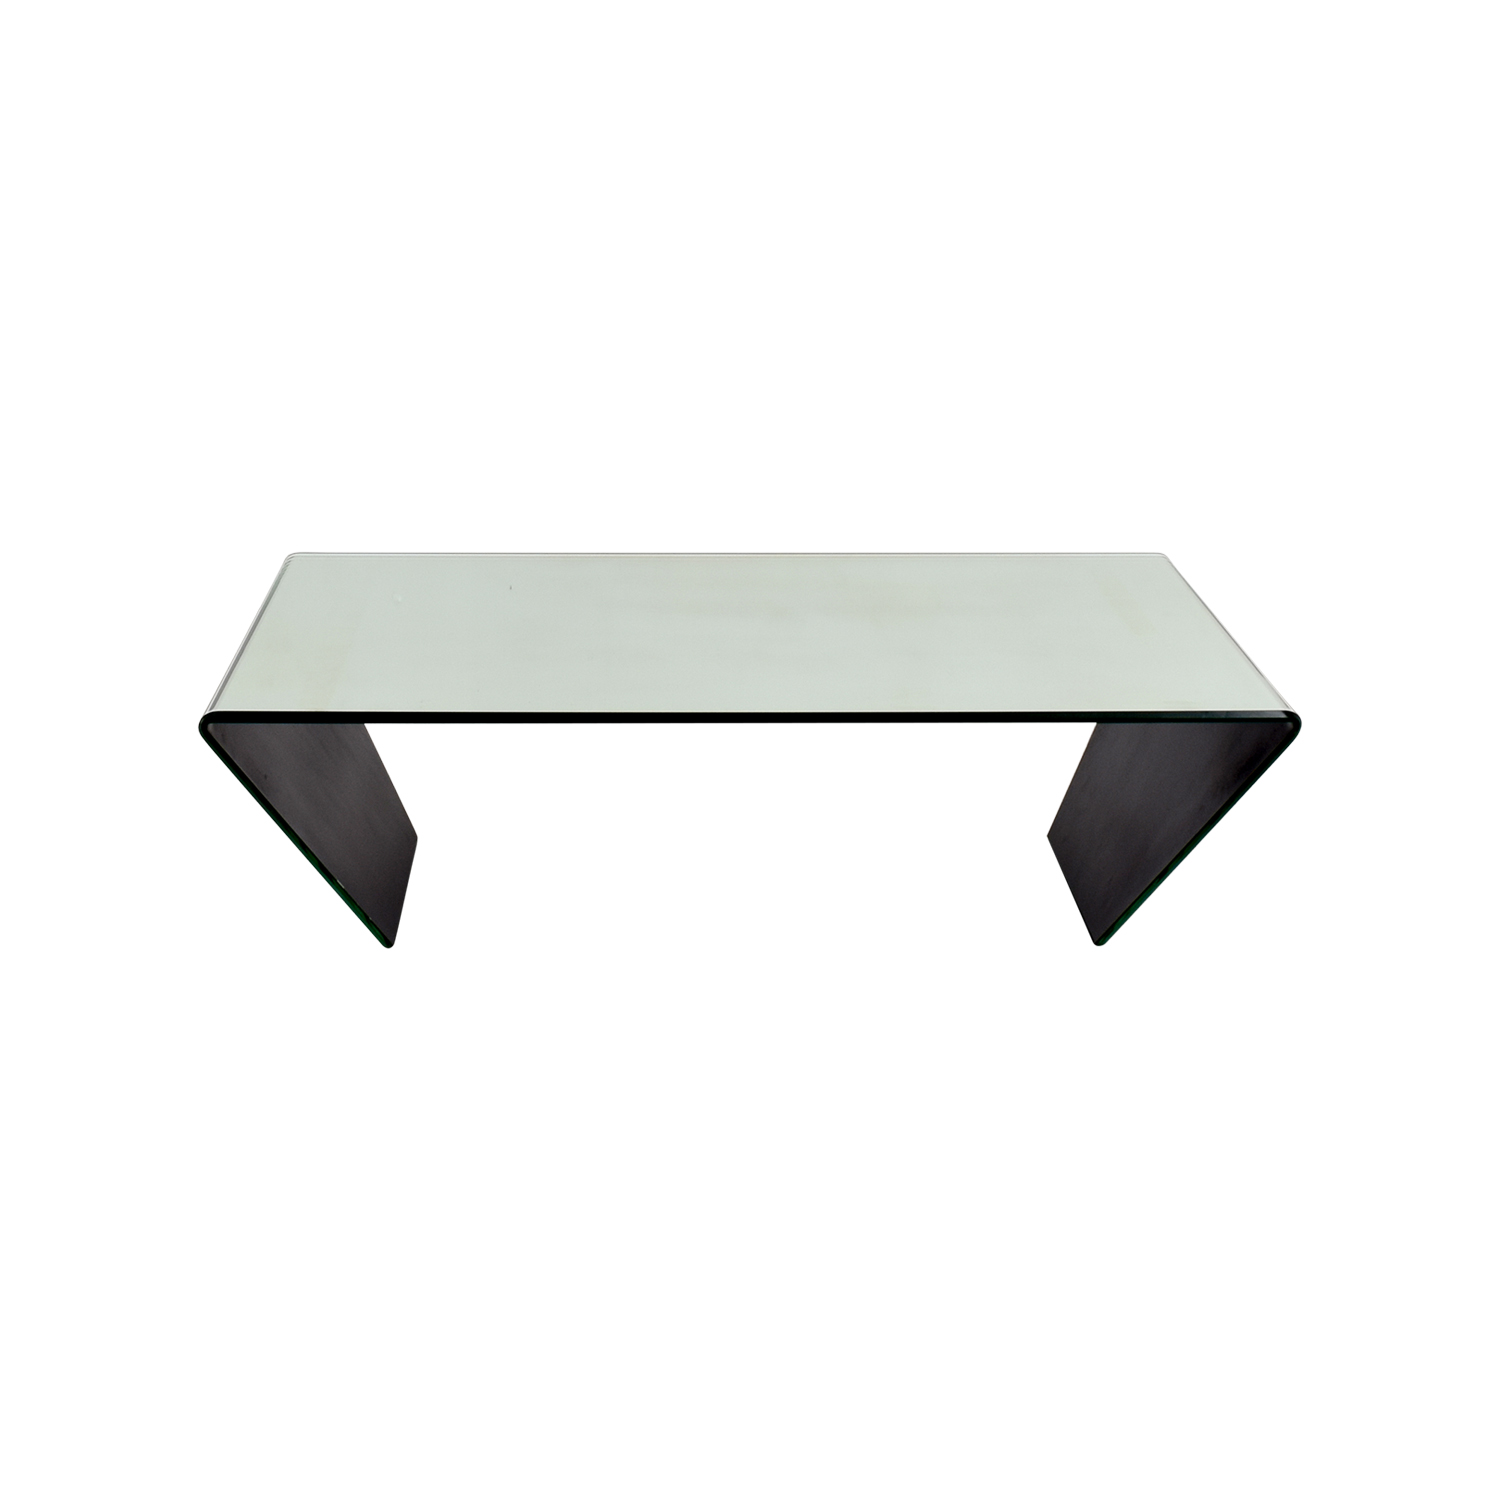 buy J & M Furniture J & M Furniture Bent Mirrired Glass Coffee Table online